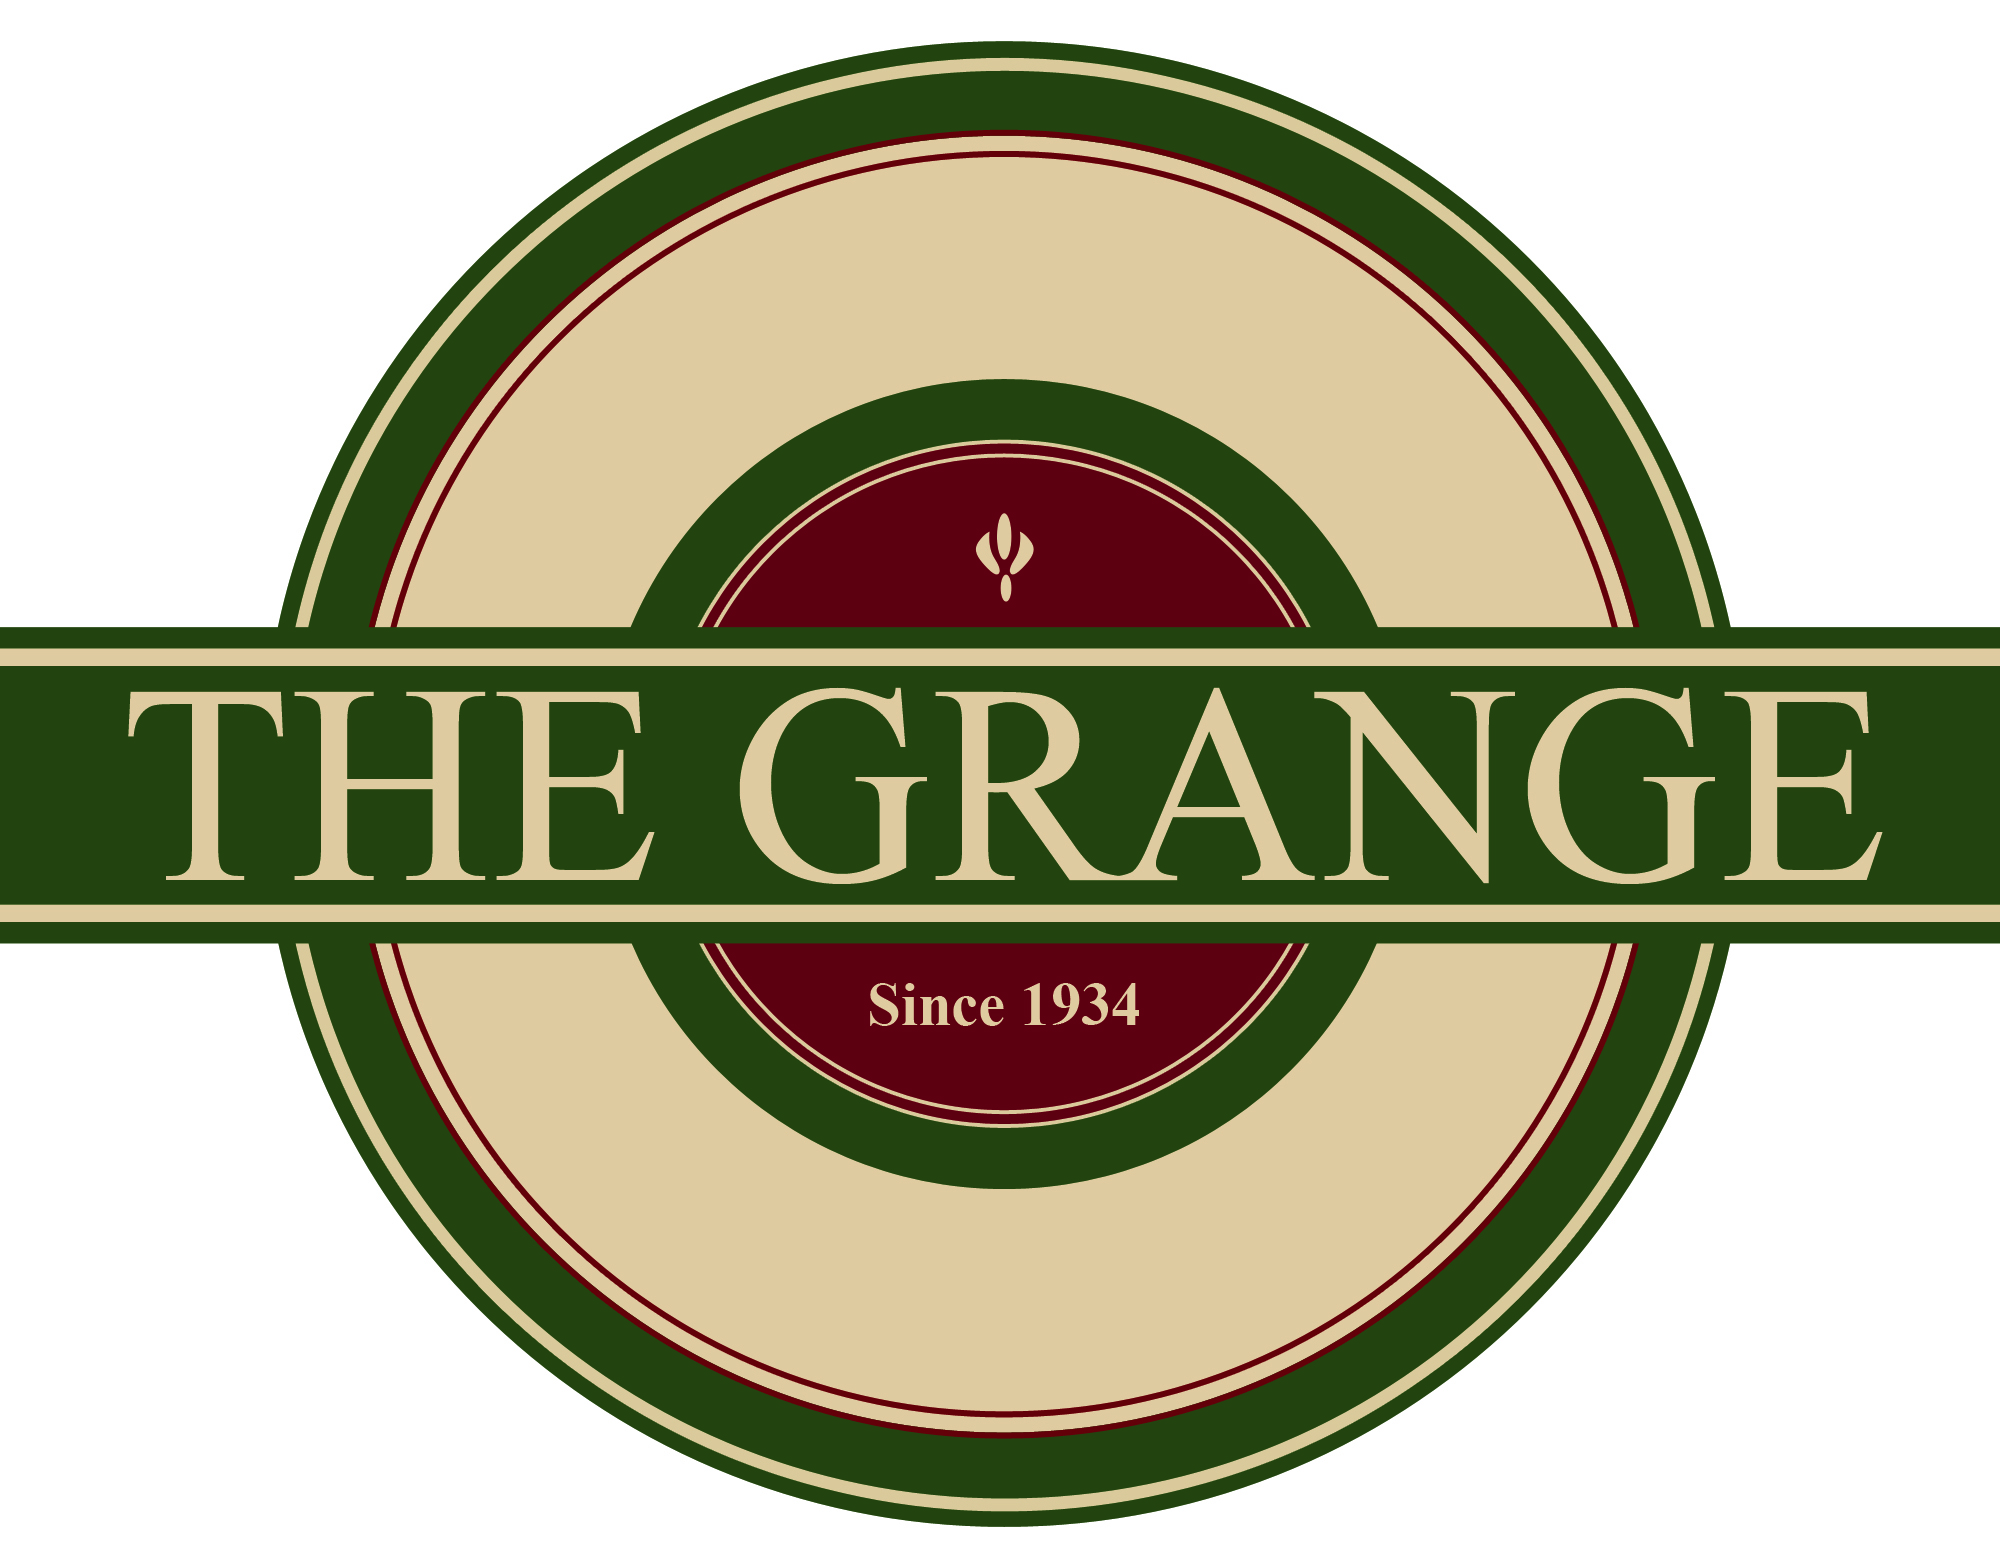 vendor-logo-files-vlogo-the-grange.jpg